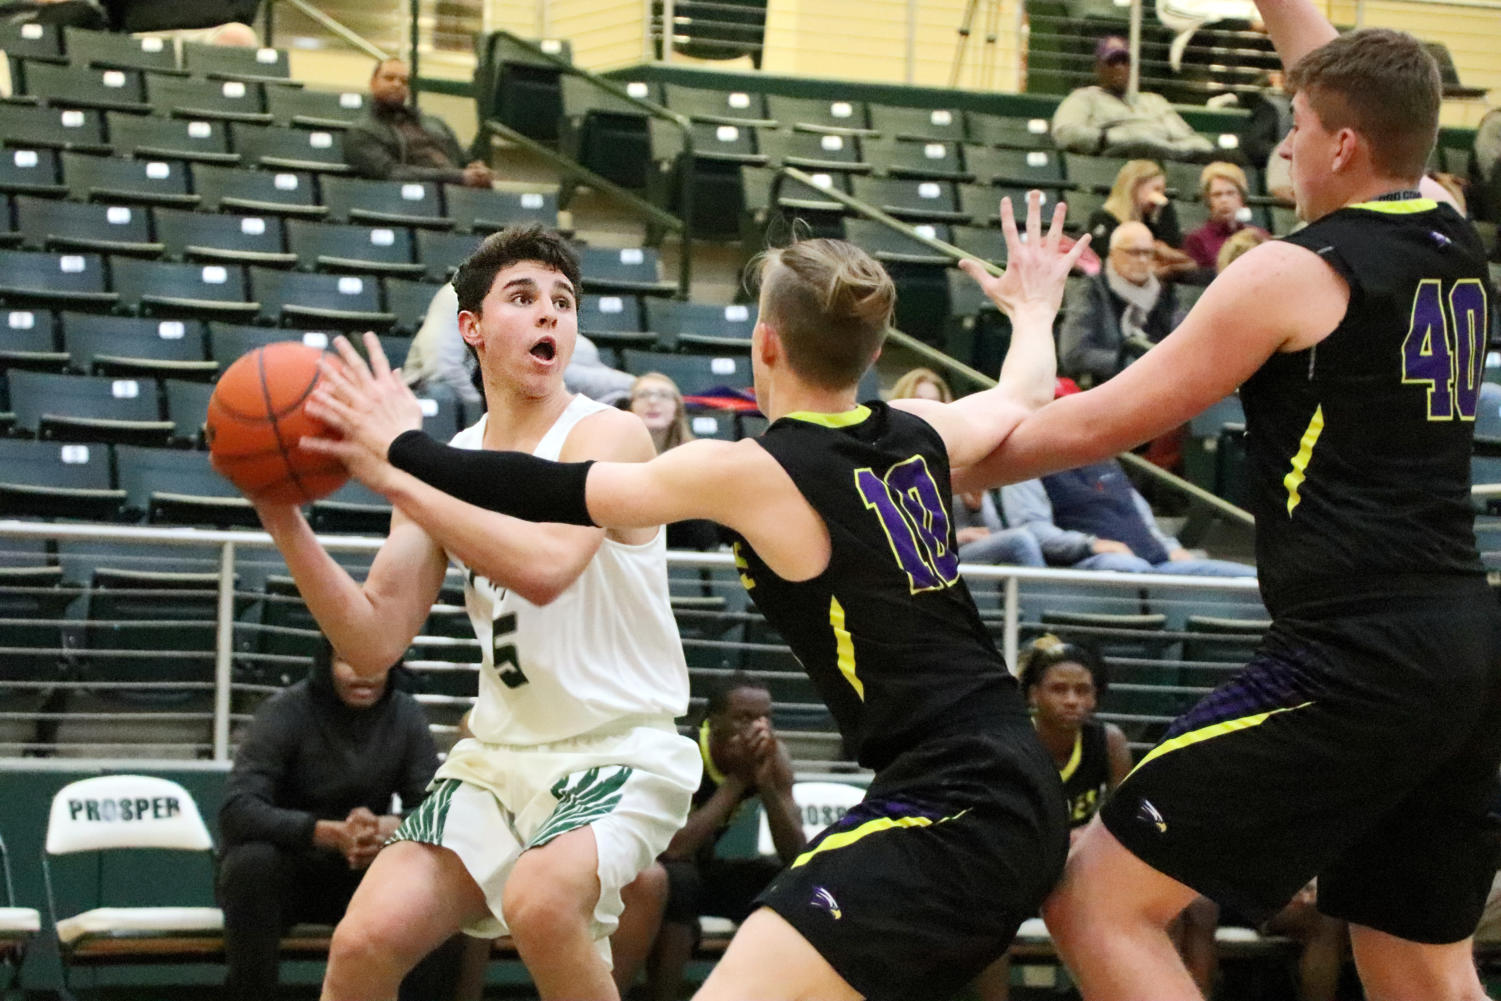 Sophomore Amman Allan, No. 5, looks to make a basket as Richardson's defender Aaaron Heft, No. 10, tries to block  him. They played Friday, Dec. 7, at home. The Eagles lost to Richardson 63-48.